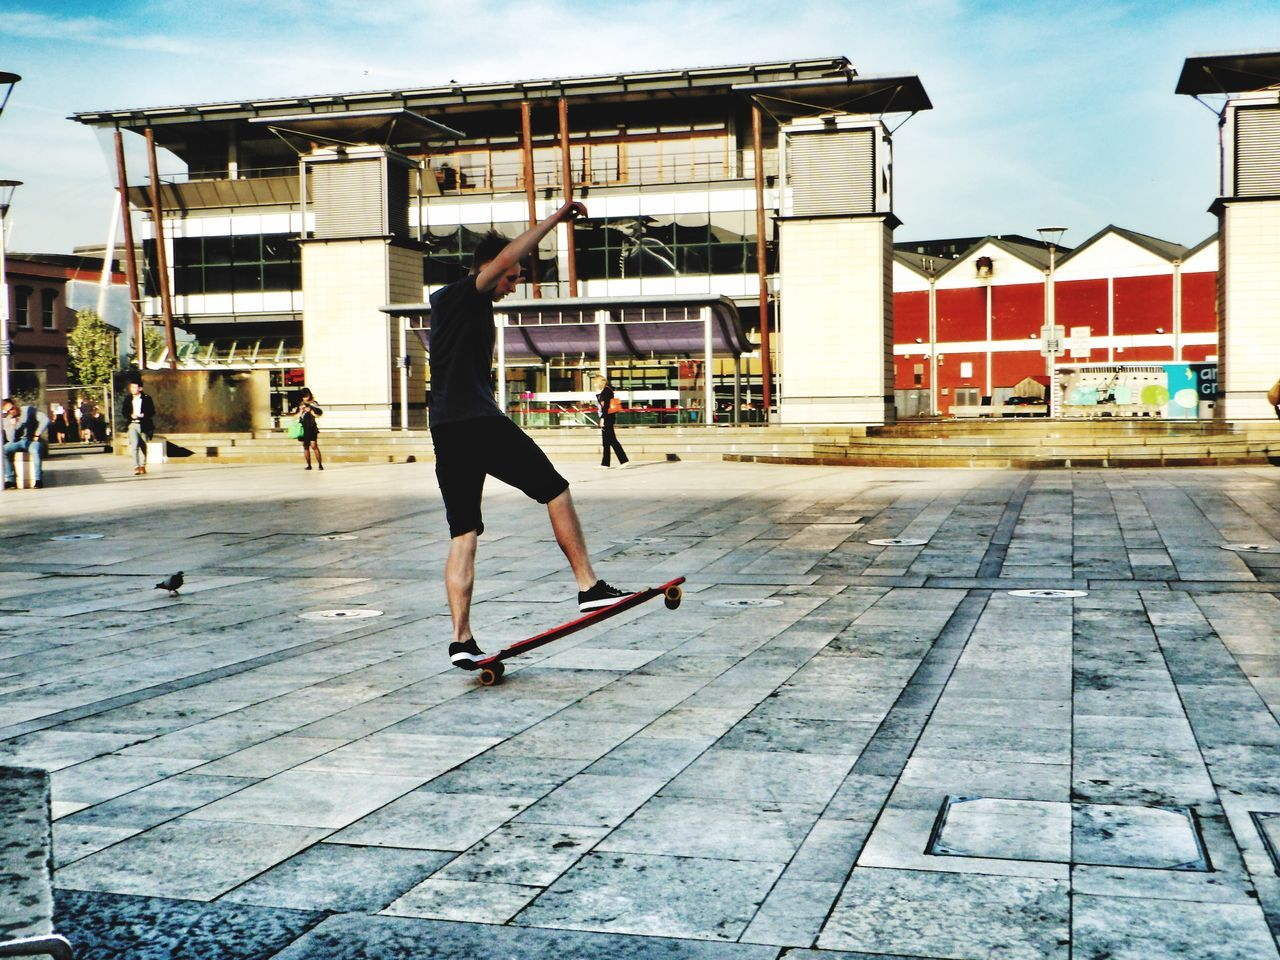 Longboard Check This Out Enjoying Life Taking Photos Skateboarding Longboarding Longboards Longboard <3 Skateboard Skate